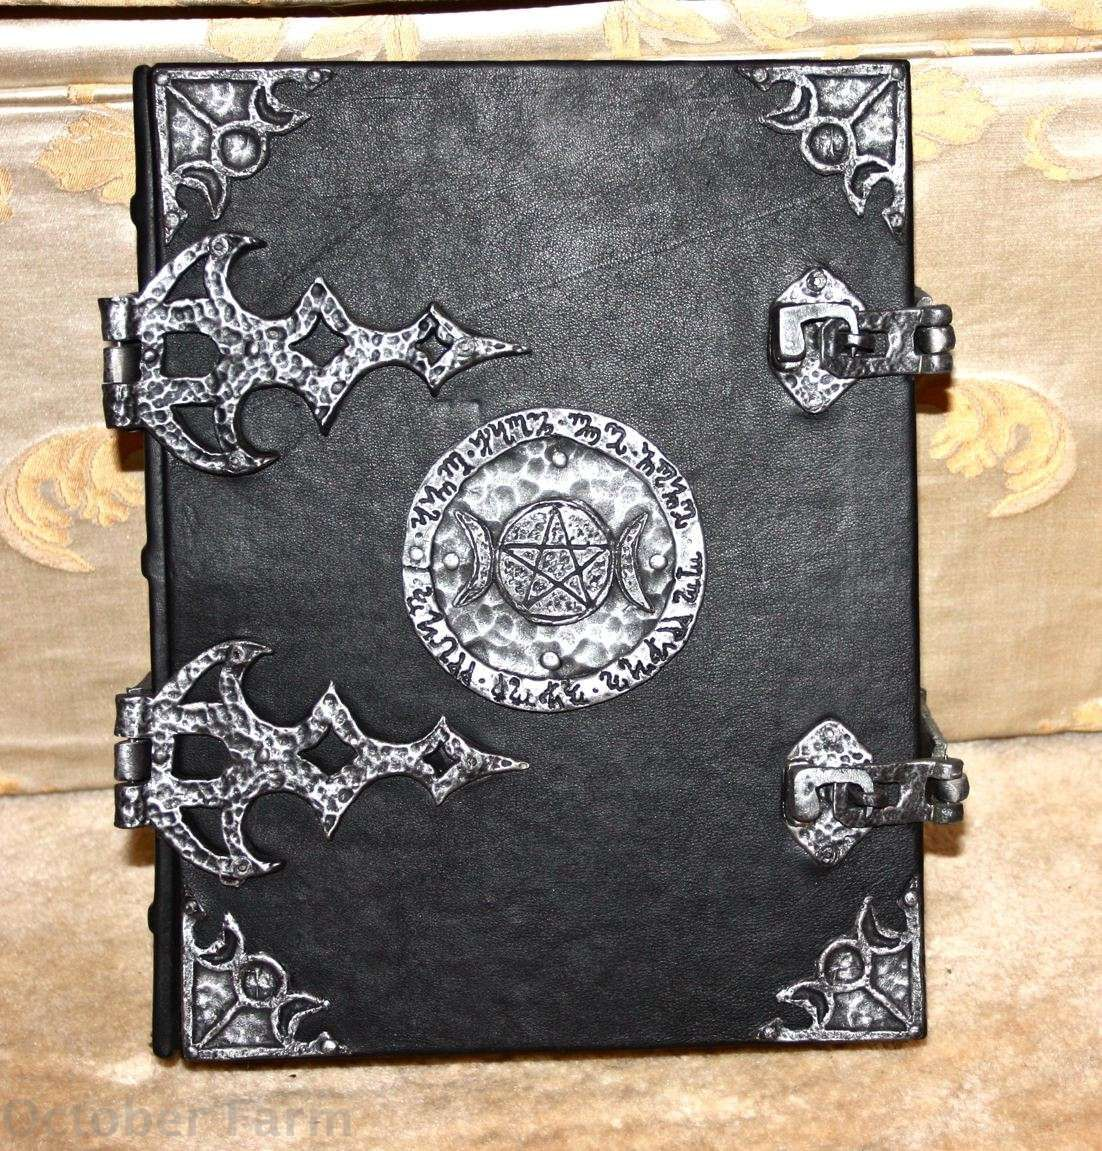 Octoberfarm: The Original Practical Magic Spellbook